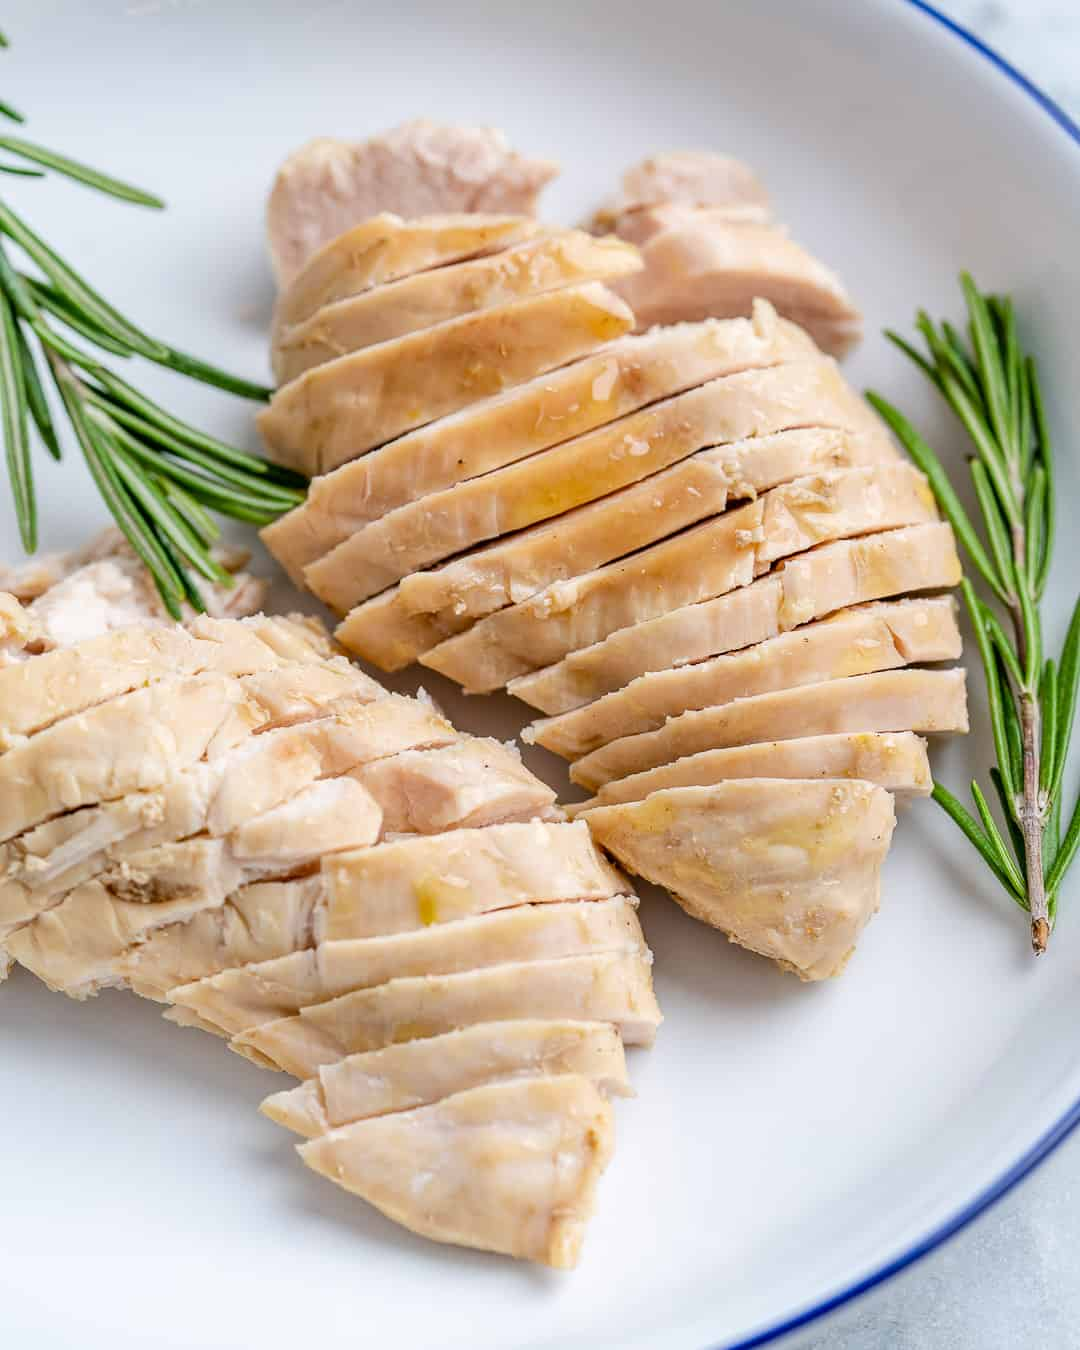 Sliced poached chicken on plate